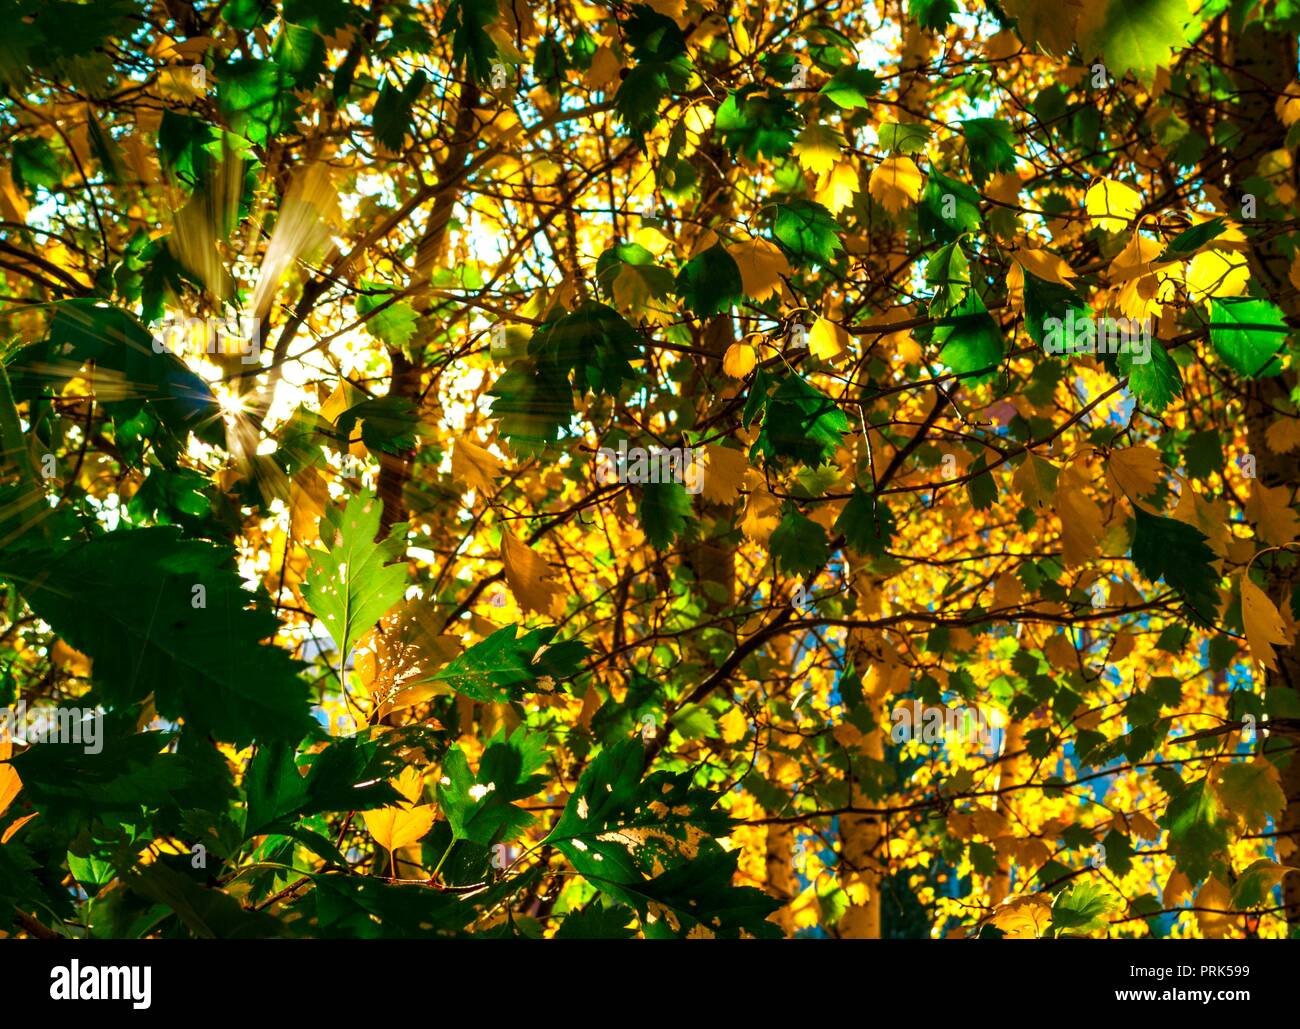 Yellow And GreenLeaves Lit By The Sun Rays. Colorful Background. Autumn Golden Foliage. - Stock Image